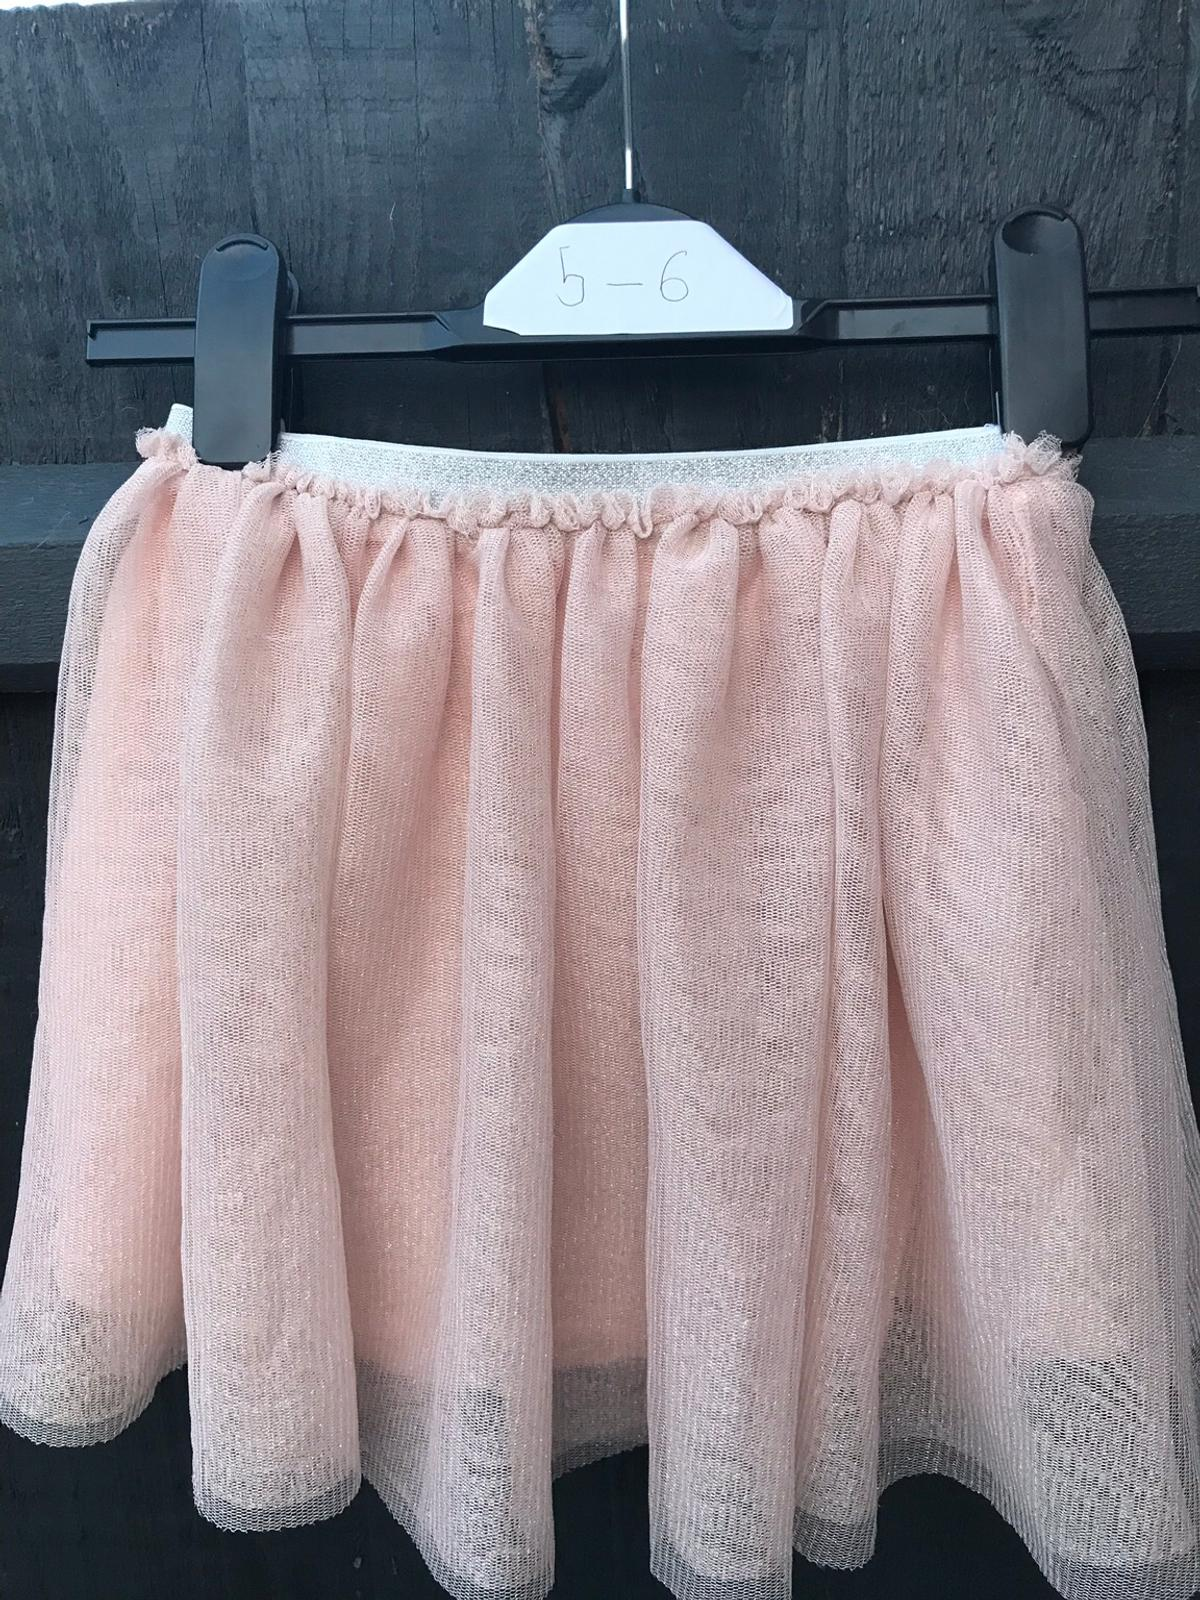 Pink netted shimmery skirt Beautiful and in excellent condition Age 5-6 Collection from louth or can deliver if local to louth £2.50